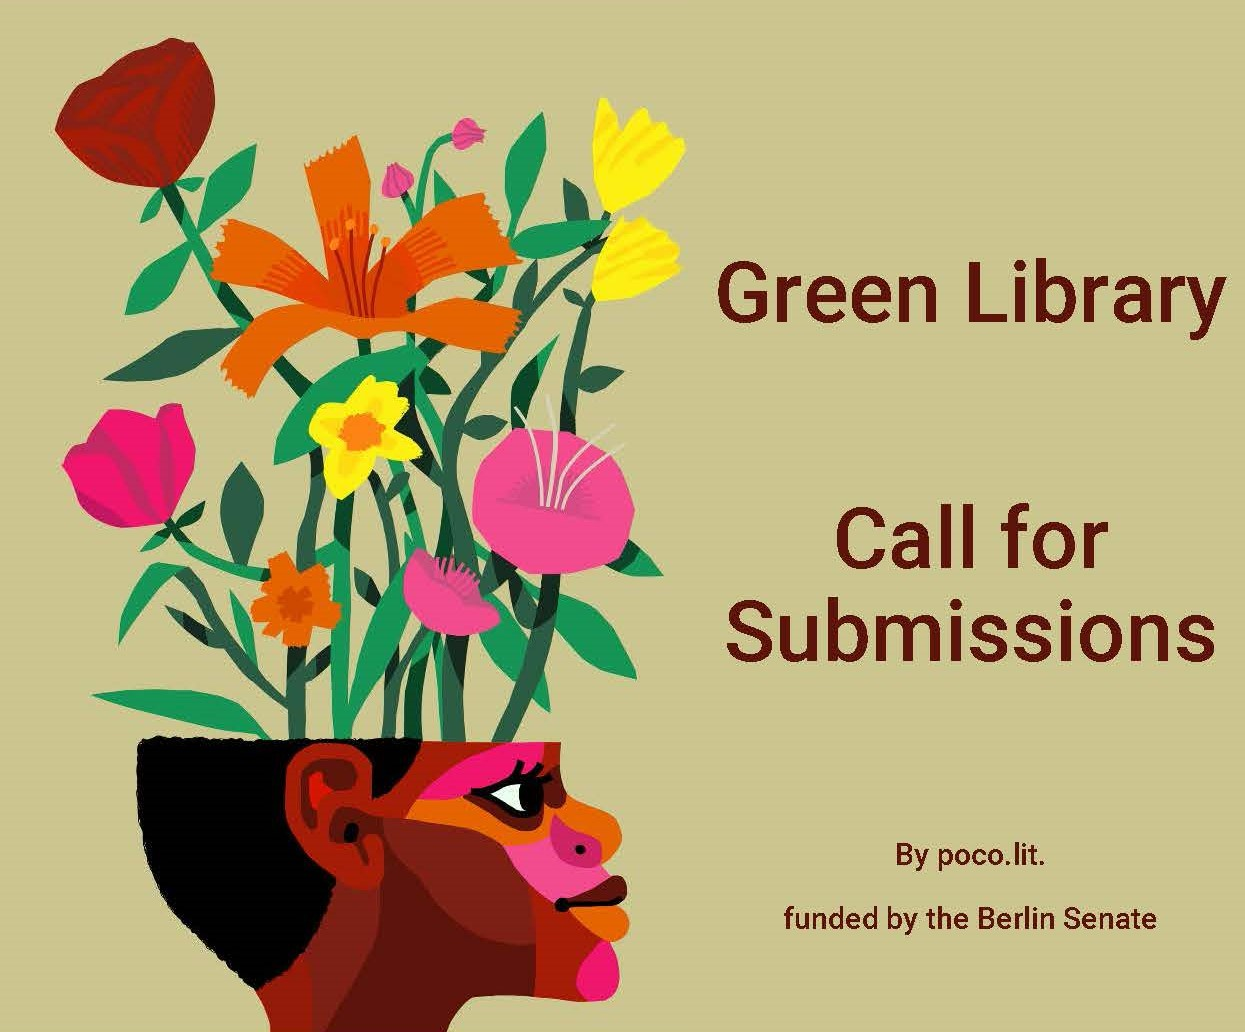 Green Library: Call for Submissions